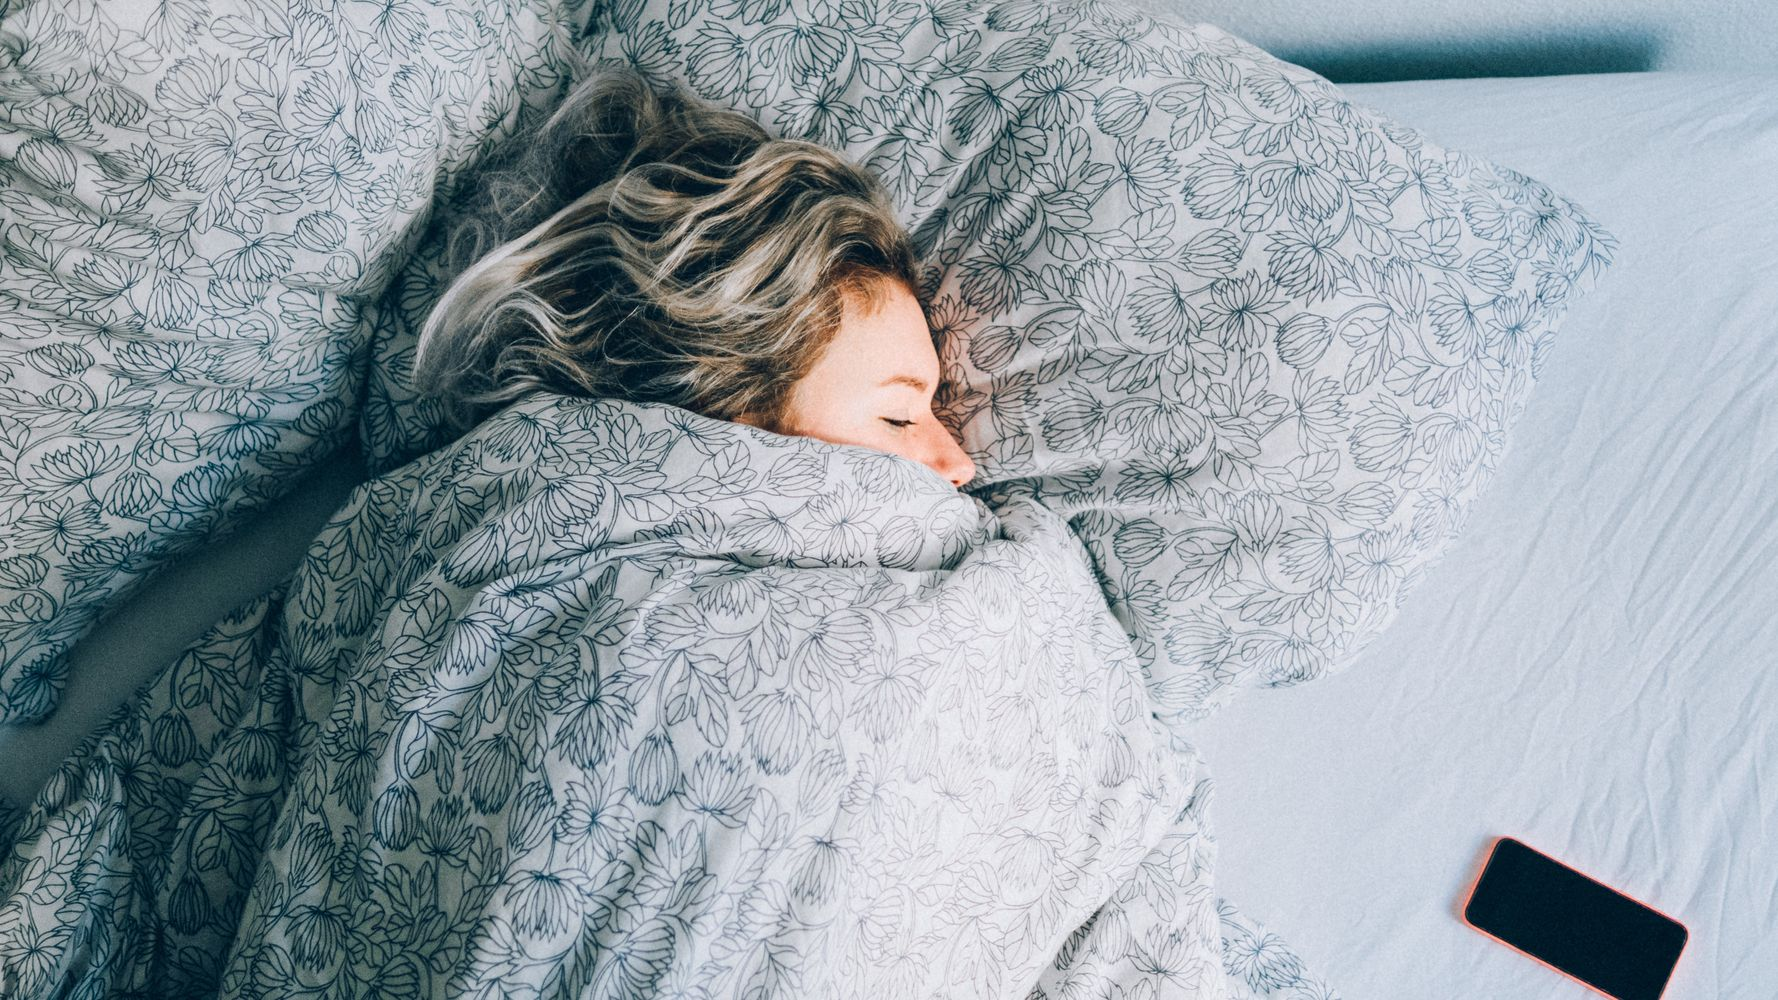 The Best Pillows For Side Sleepers To Prevent Neck, Shoulder And Back Pain